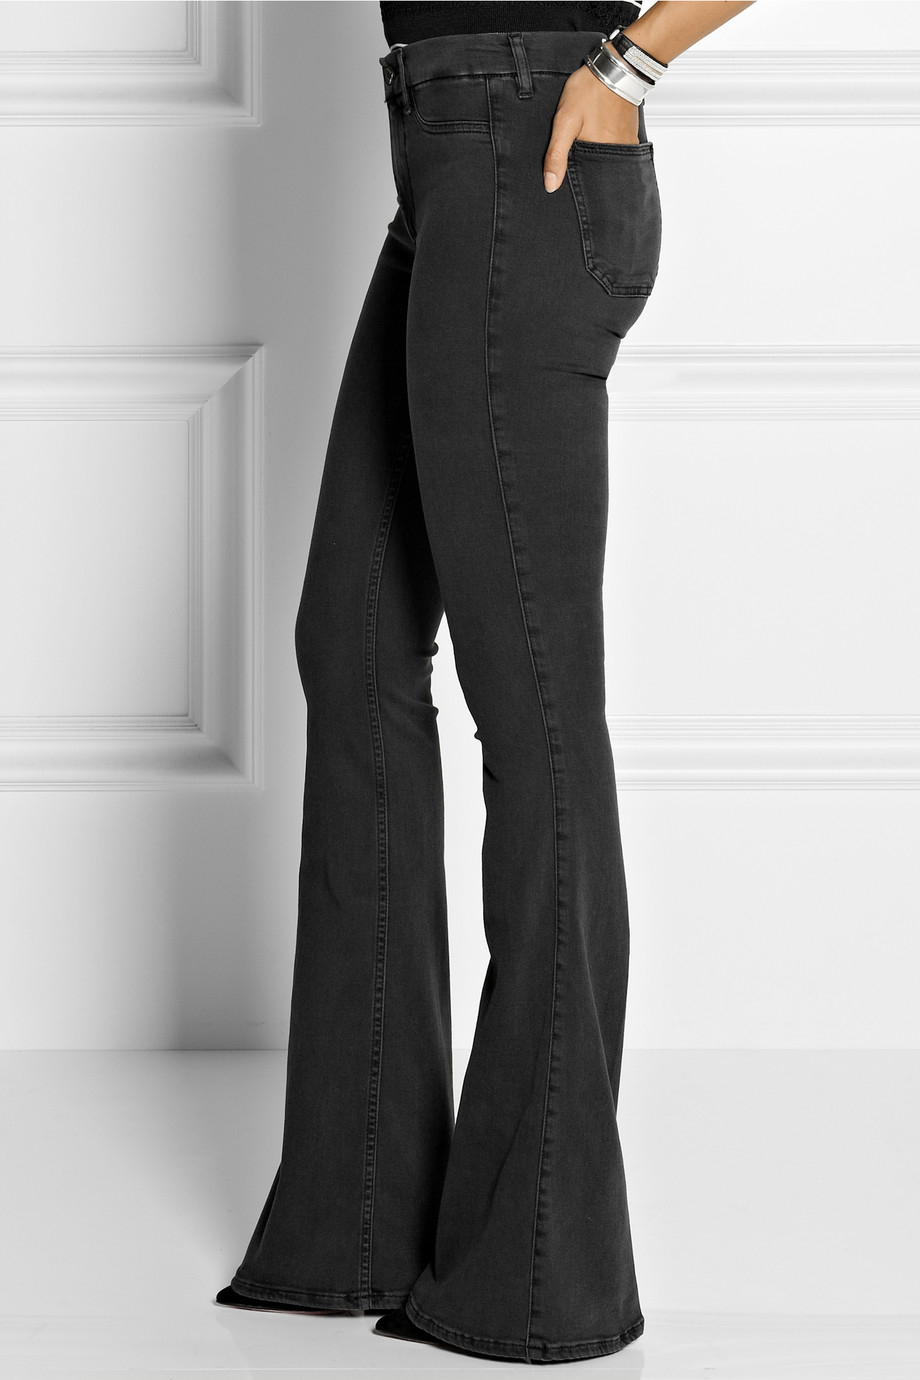 M.i.h jeans The Skinny Marrakesh Mid-Rise Flared Jeans in Black | Lyst